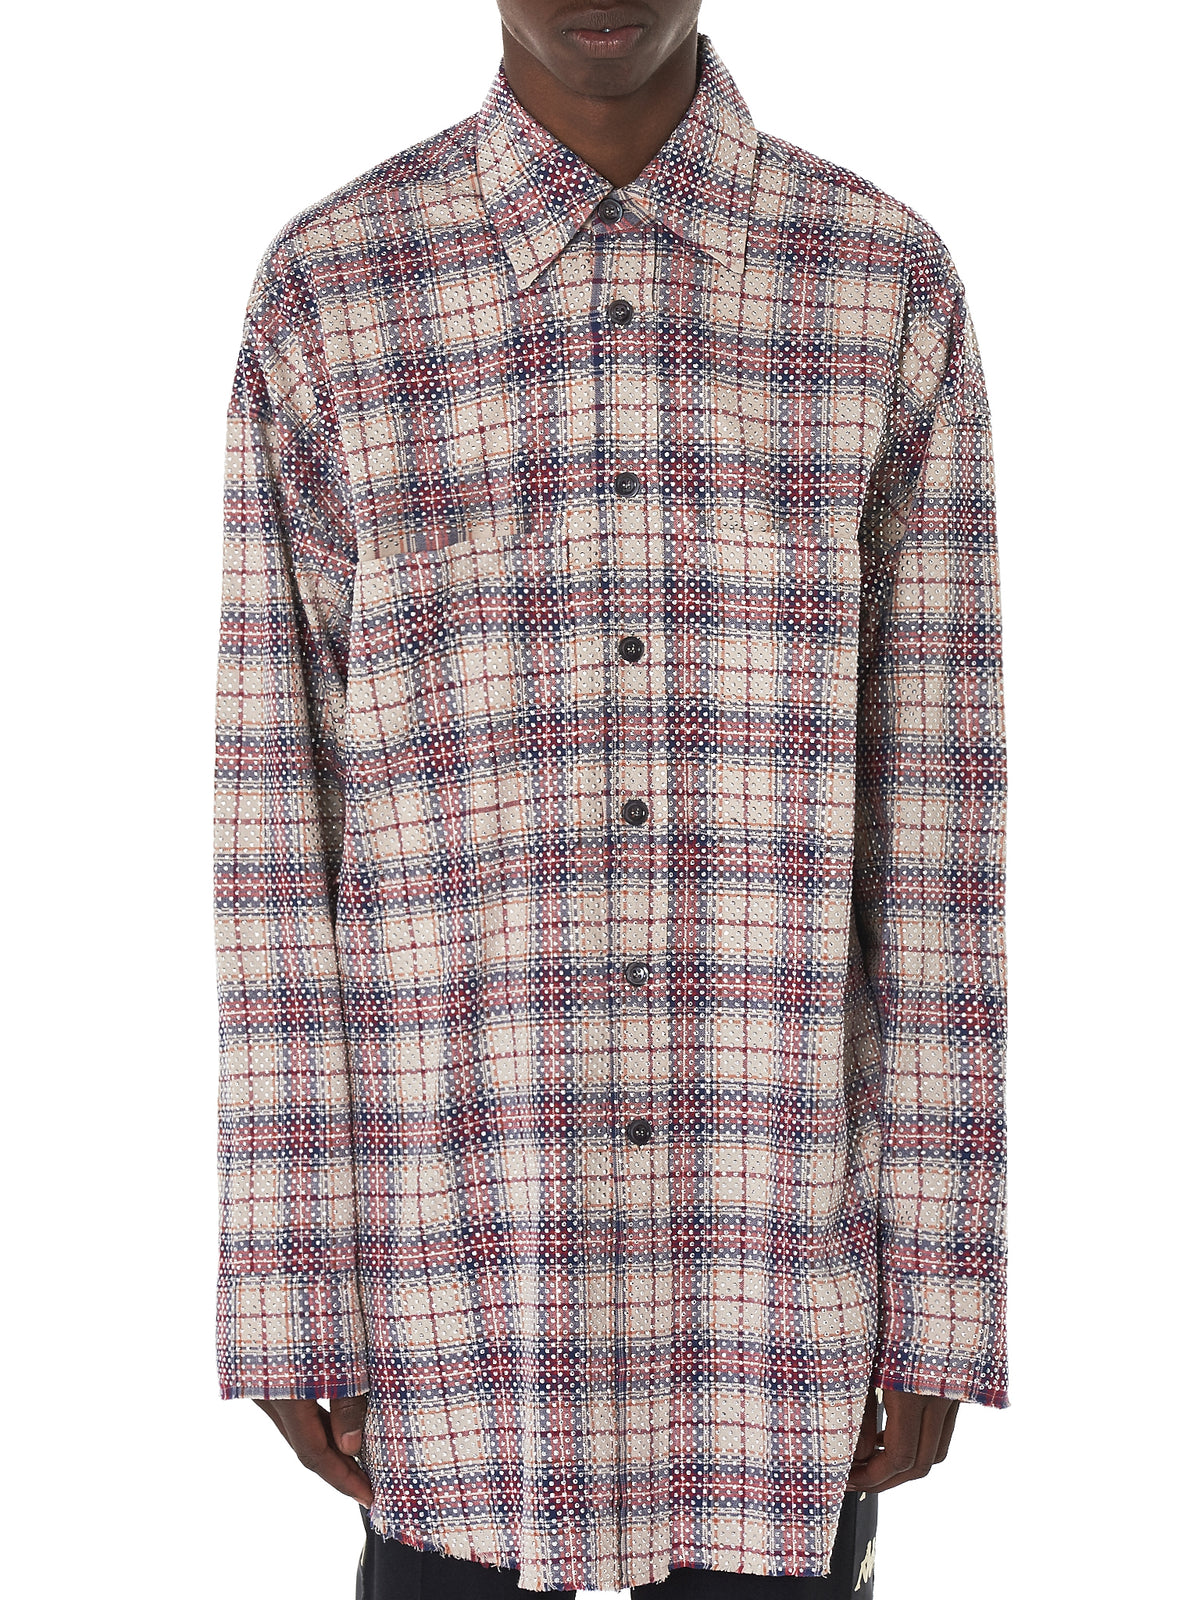 Faith Connexion Flannel Shirt - Hlorenzo Front